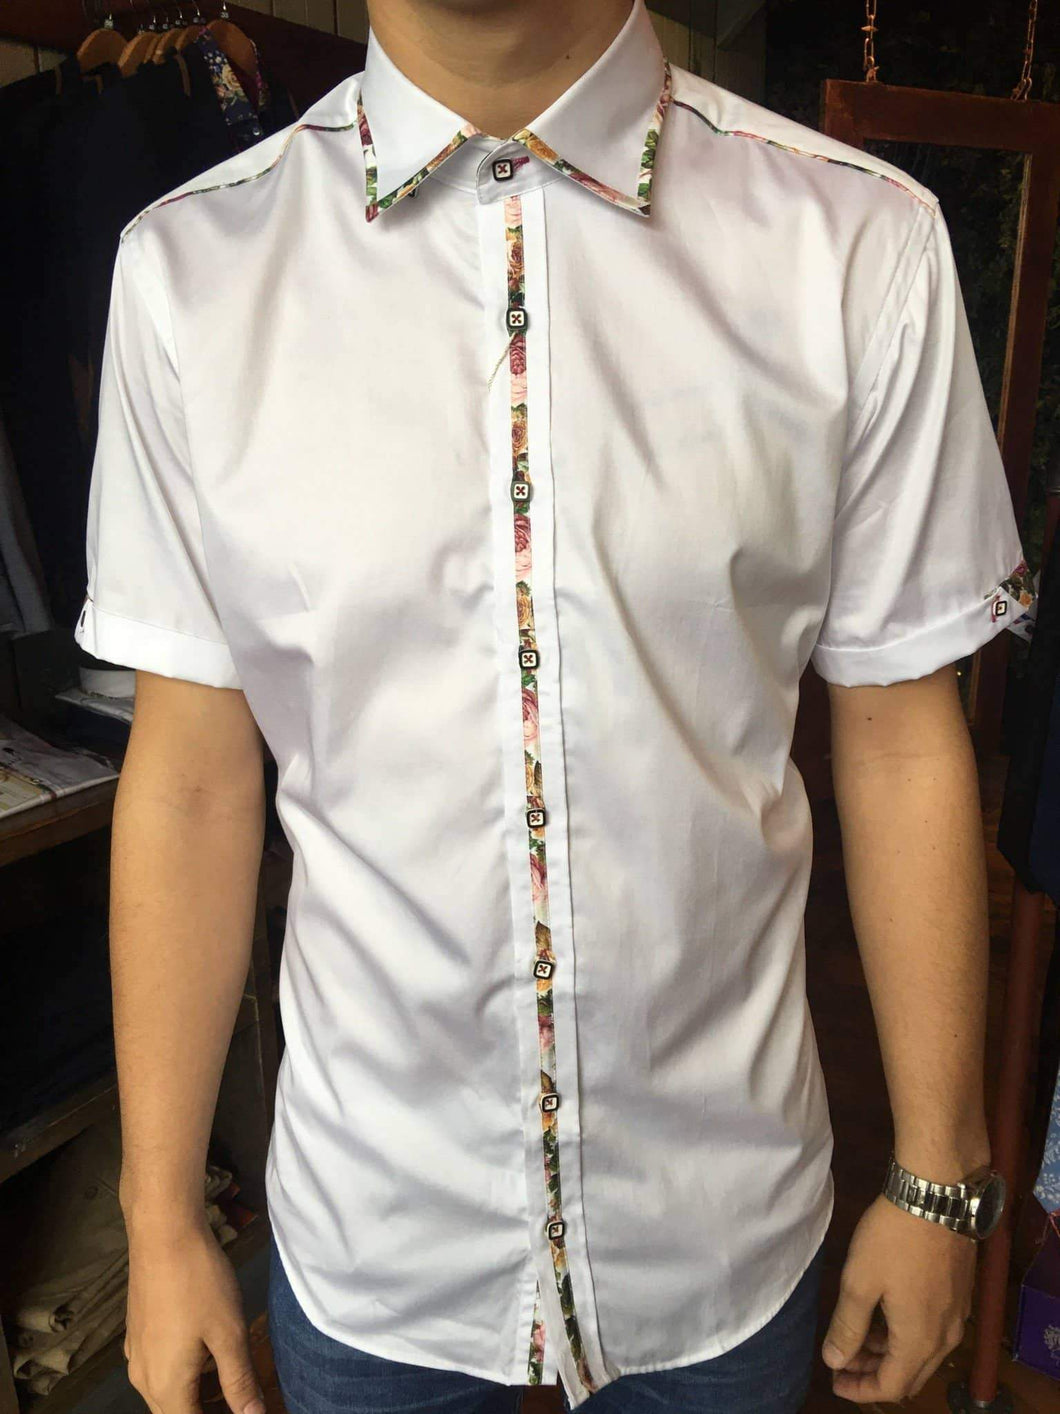 Claudio Lugli White Floral Rose Trim Cotton Short Sleeve Shirt - CP6022 S